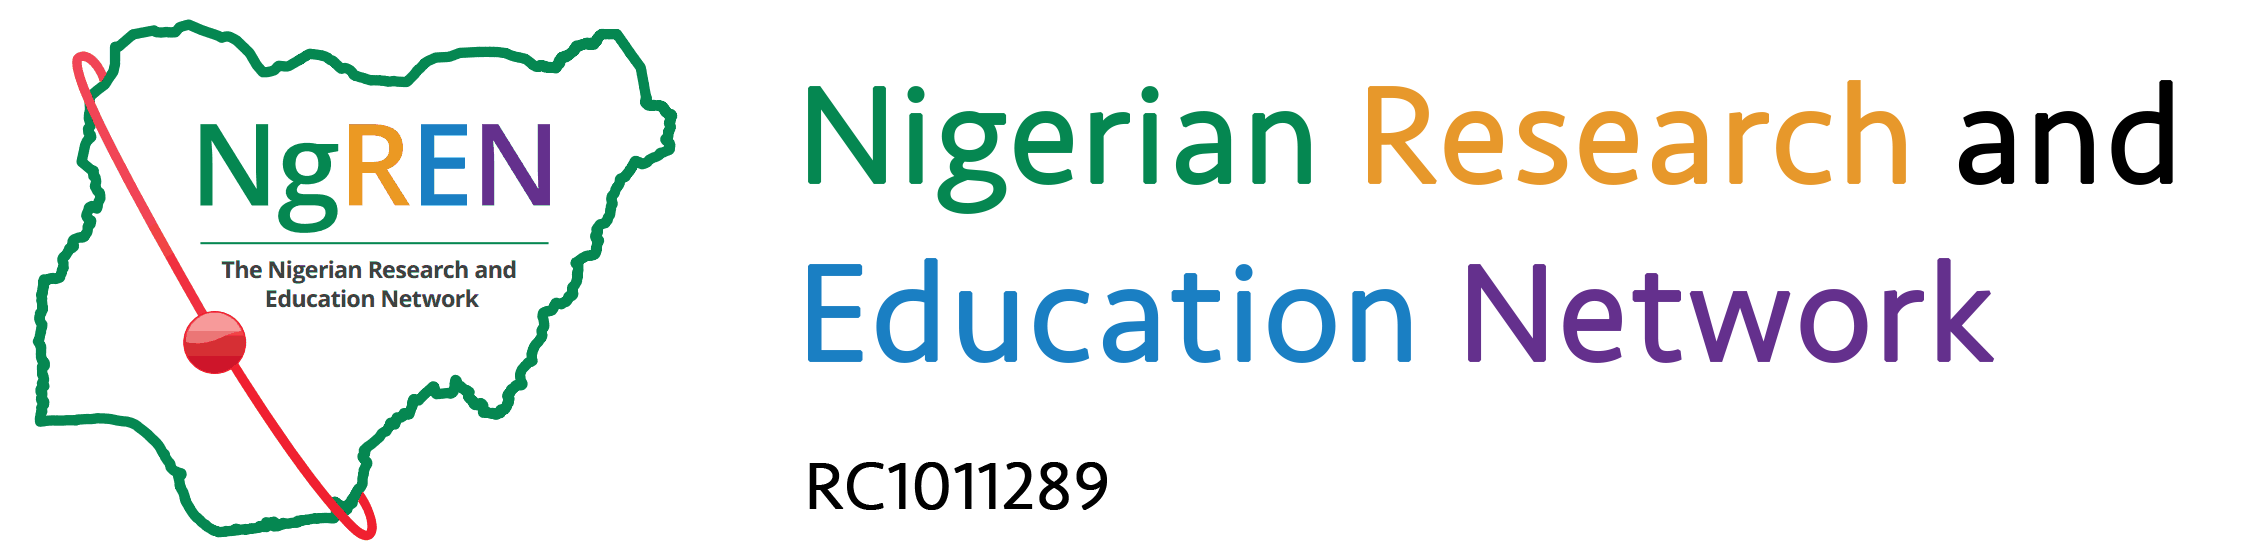 NgREN - Nigerian Research and Education Network